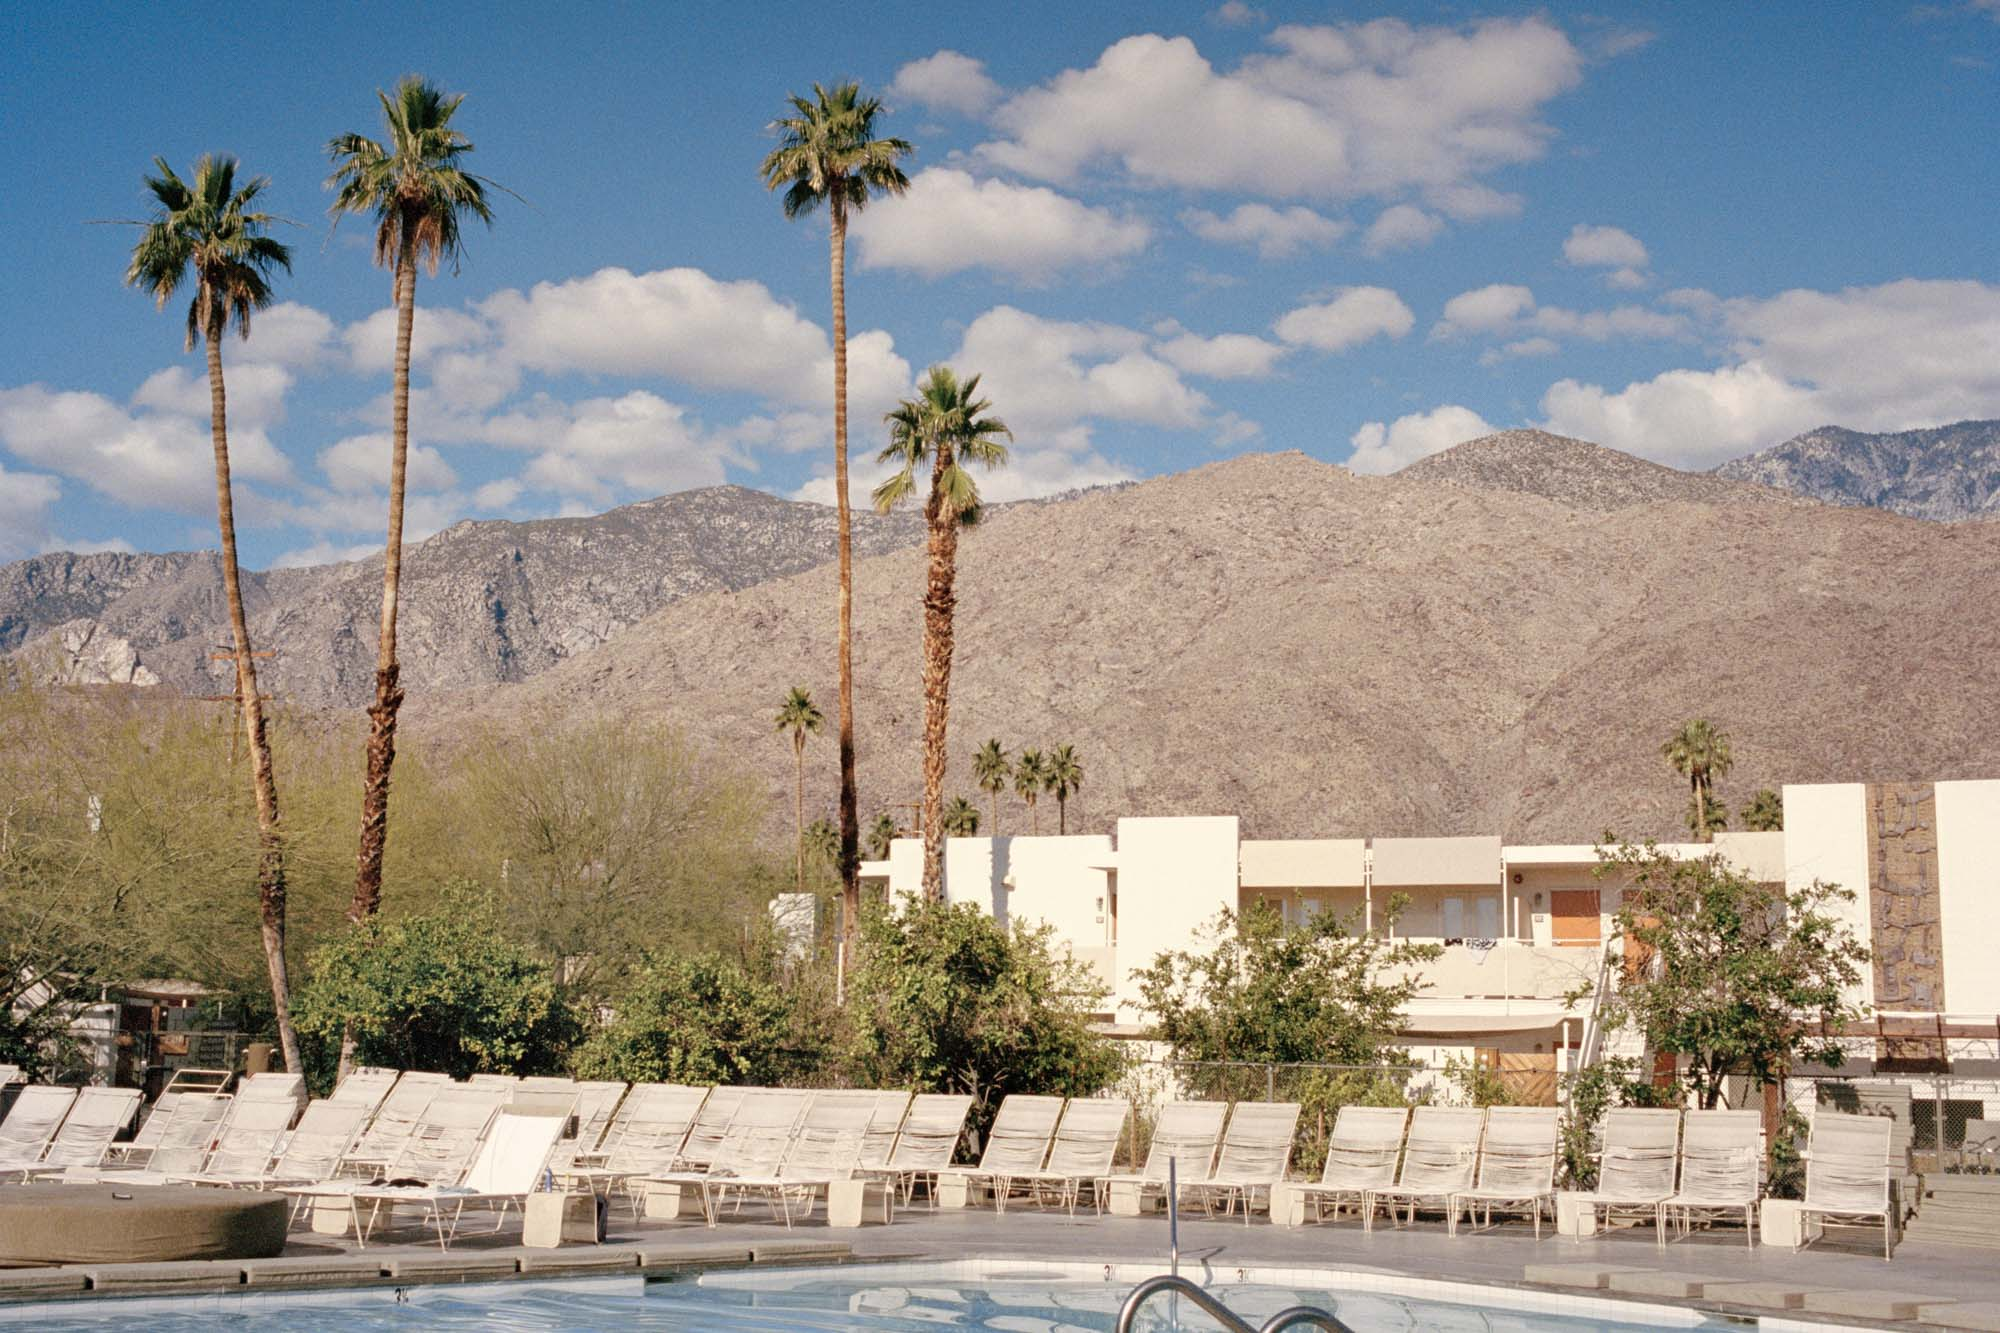 A photograph of a swimming pool looking out on palm trees & large mountains. Blue skies, clouds & Palm trees. USA,